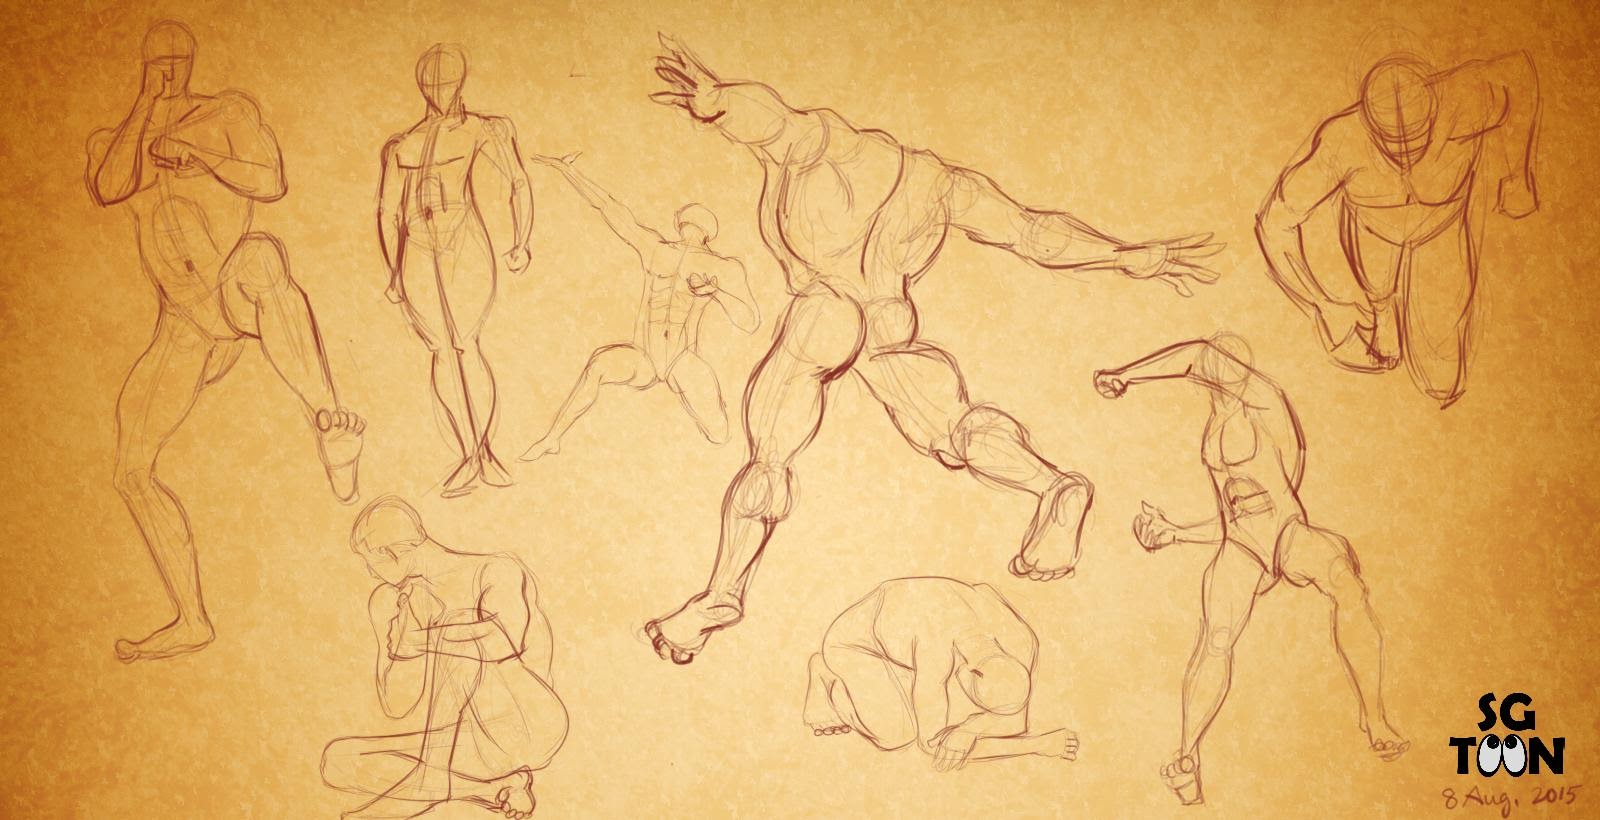 Human Anatomy Drawing And Study For Animation Animation Artist Blog